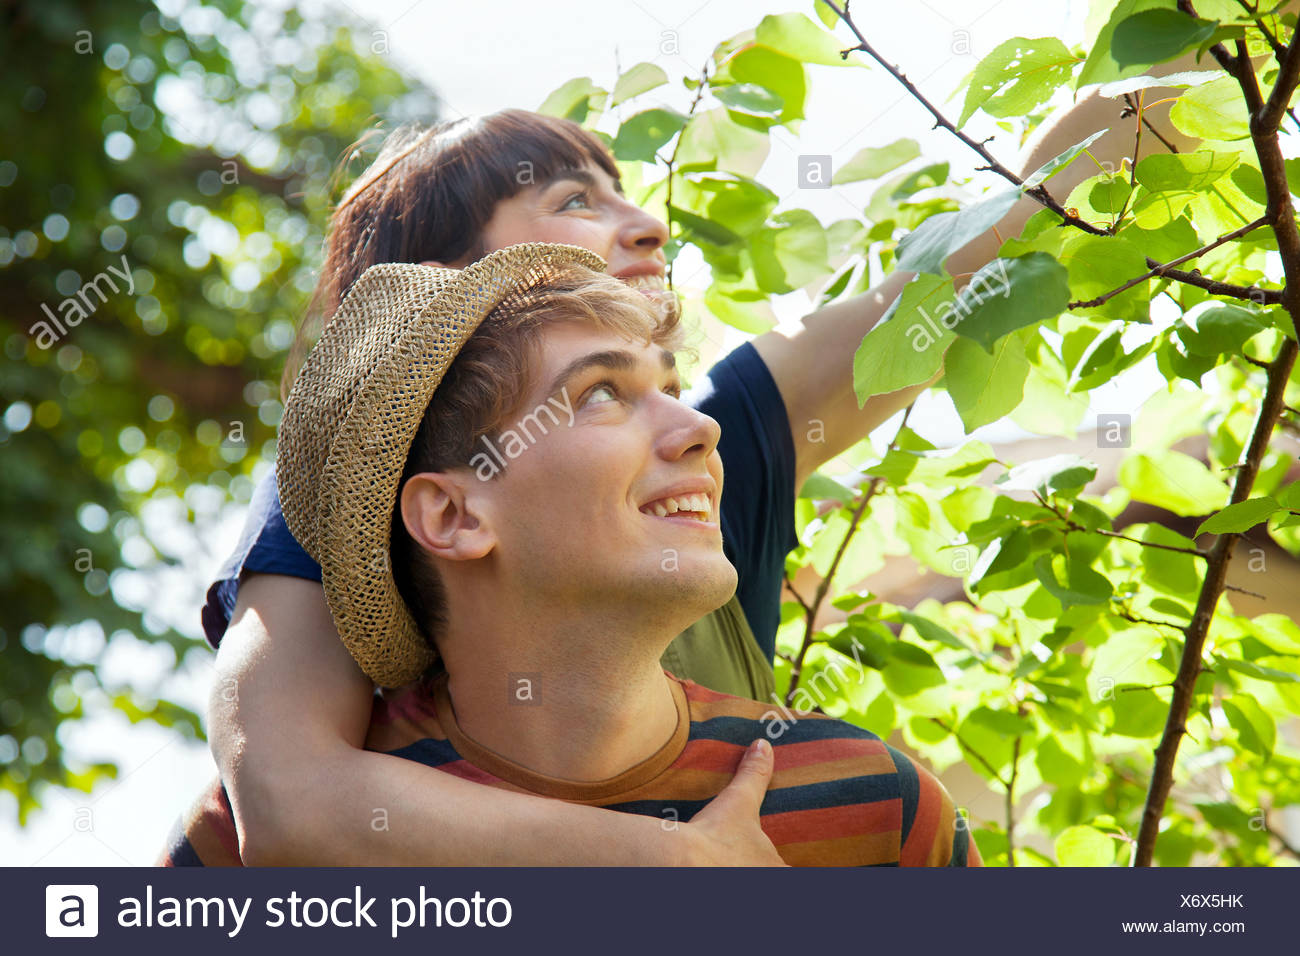 Woman with arm around man, touching leaves - Stock Image